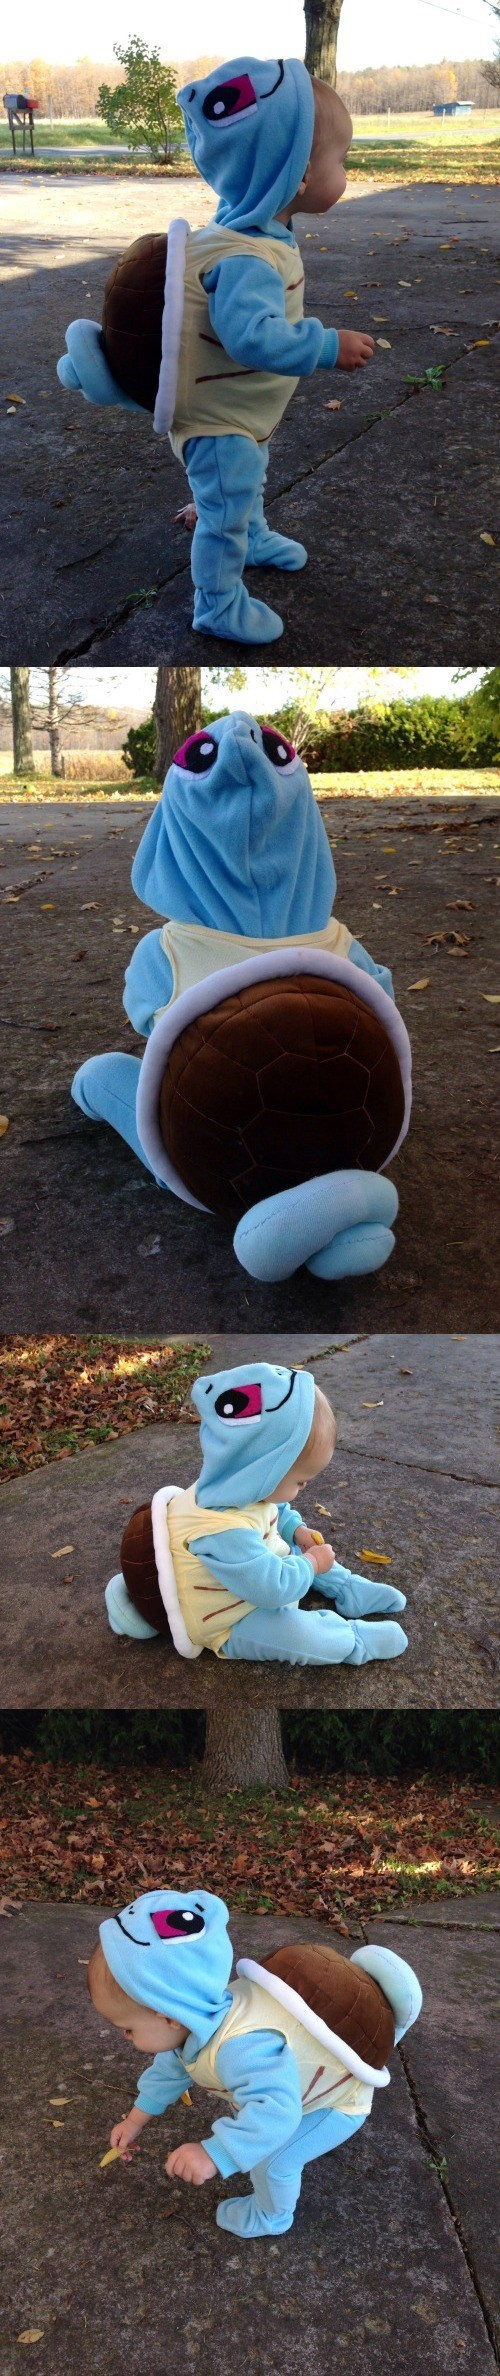 pokemon memes cute kid cosplay squirtle